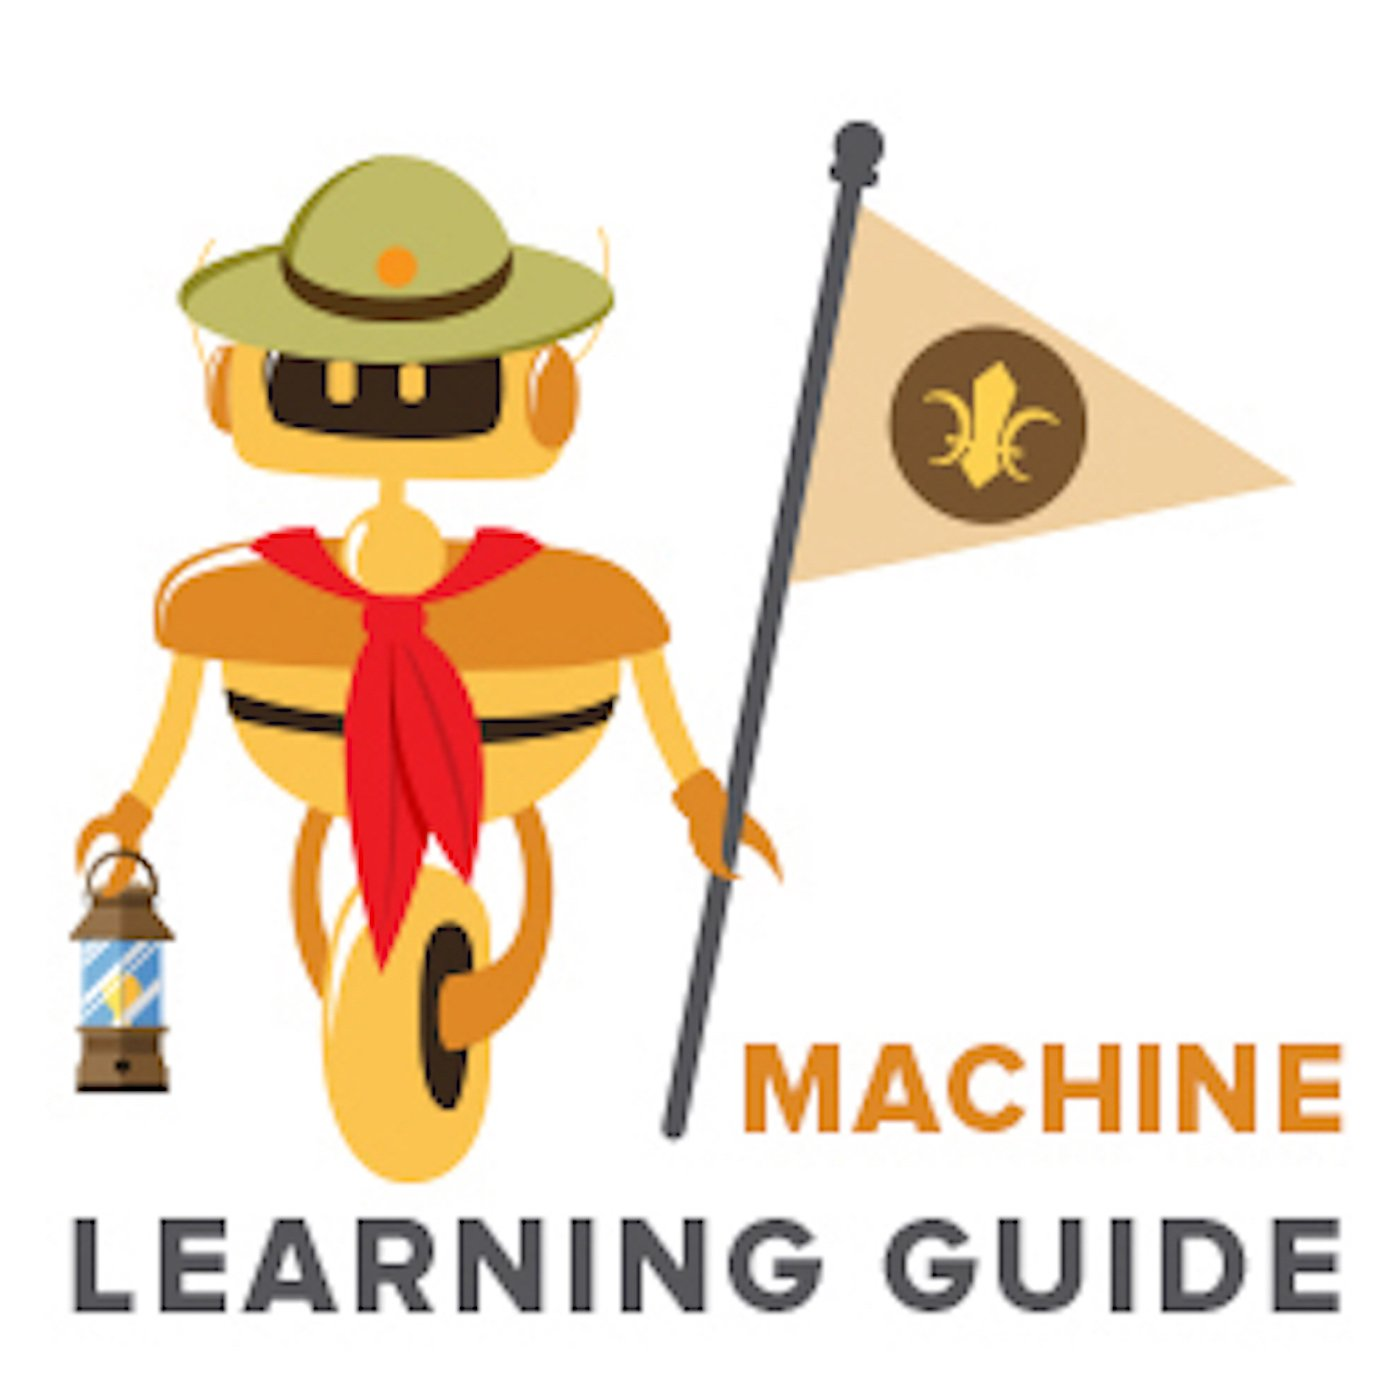 Machine Learning Guide Podcast Logo